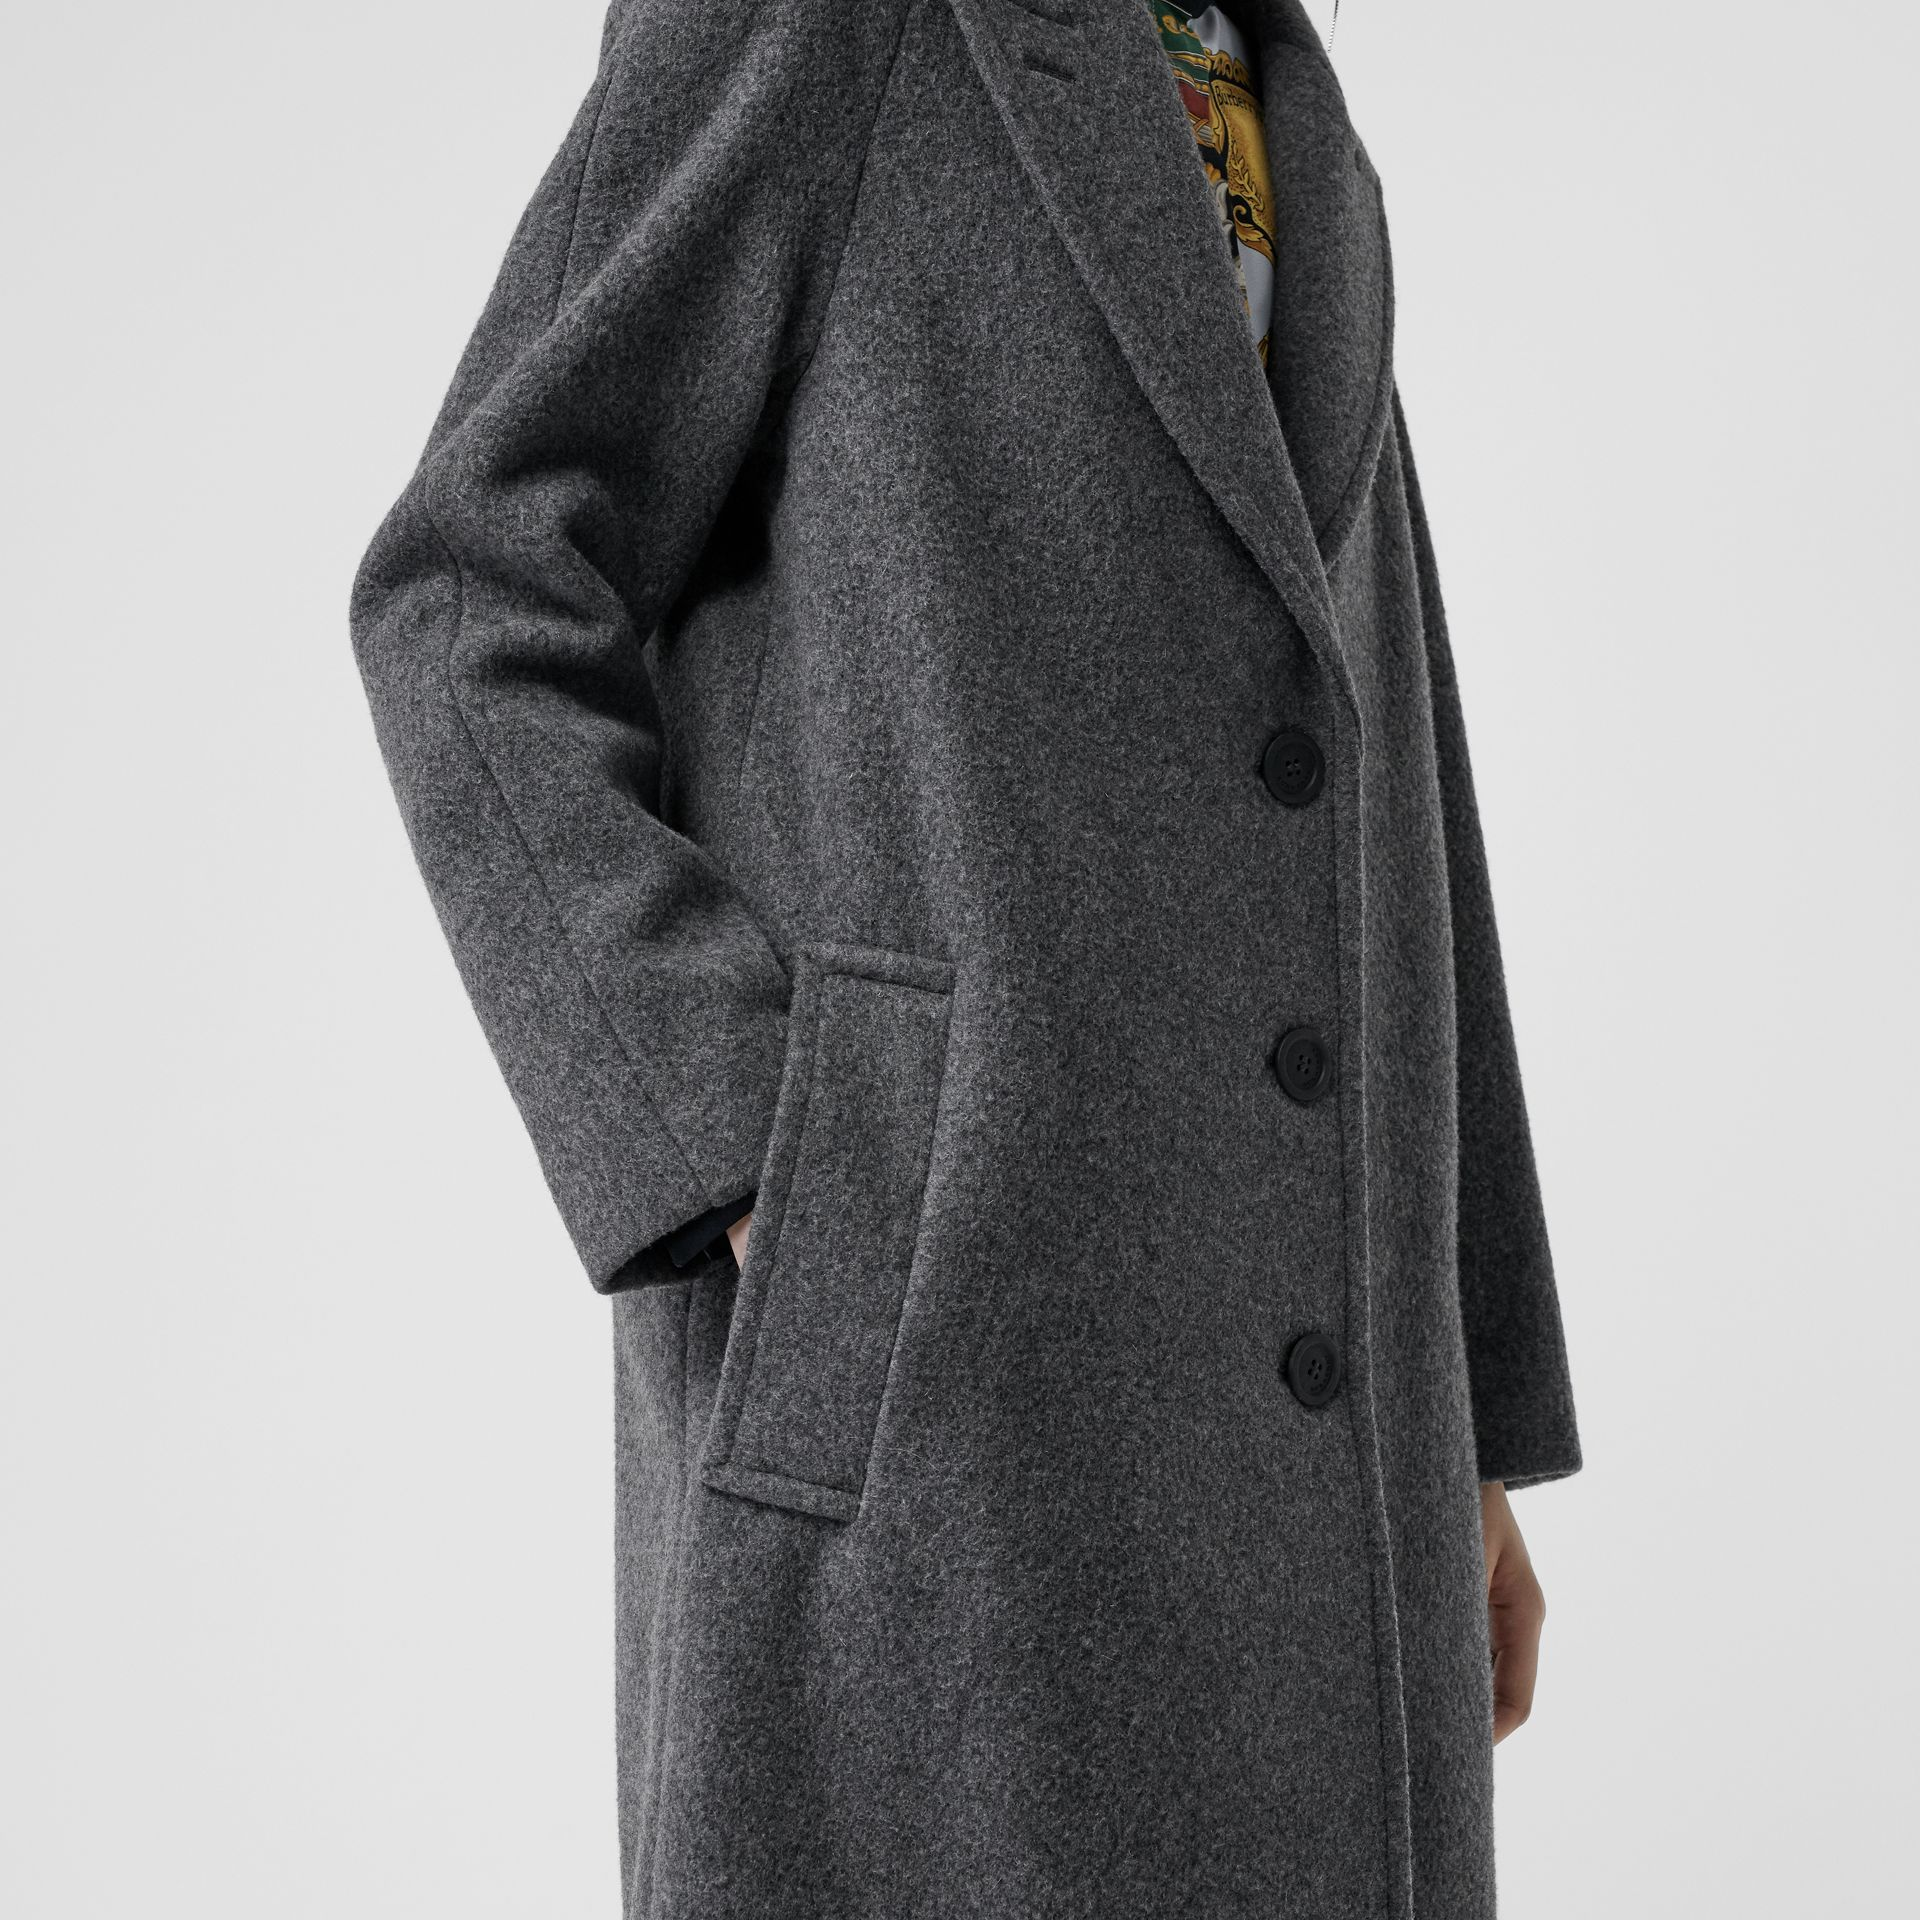 Wool Blend Tailored Coat in Mid Grey Melange - Women | Burberry - gallery image 5